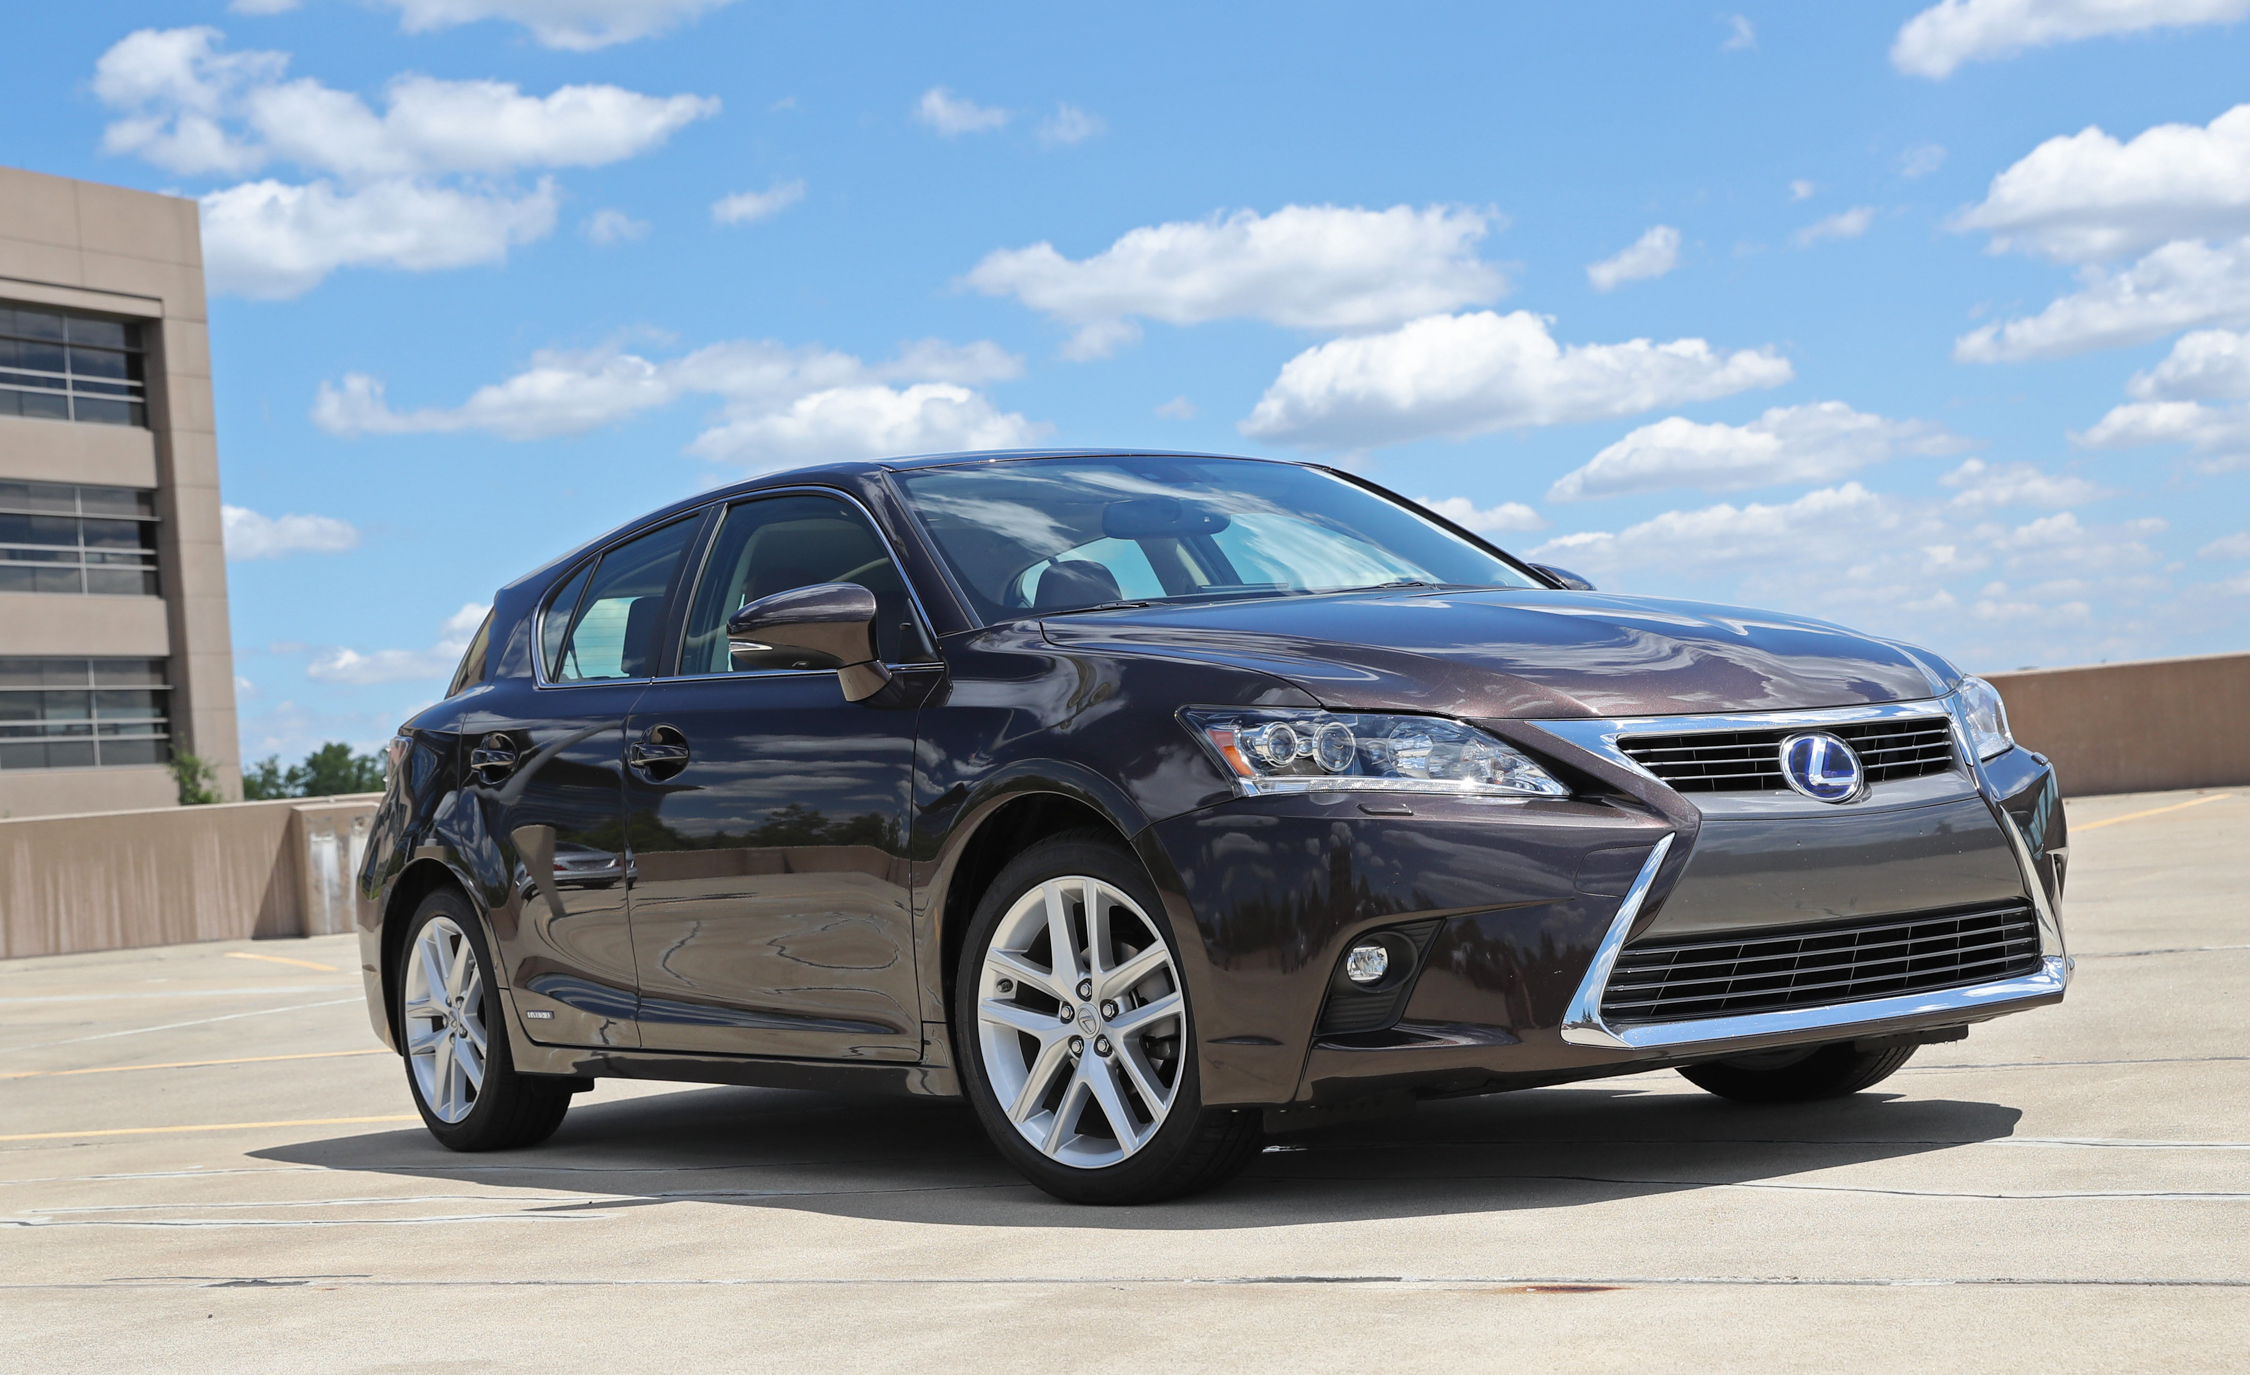 2016 Lexus CT200h (View 14 of 29)